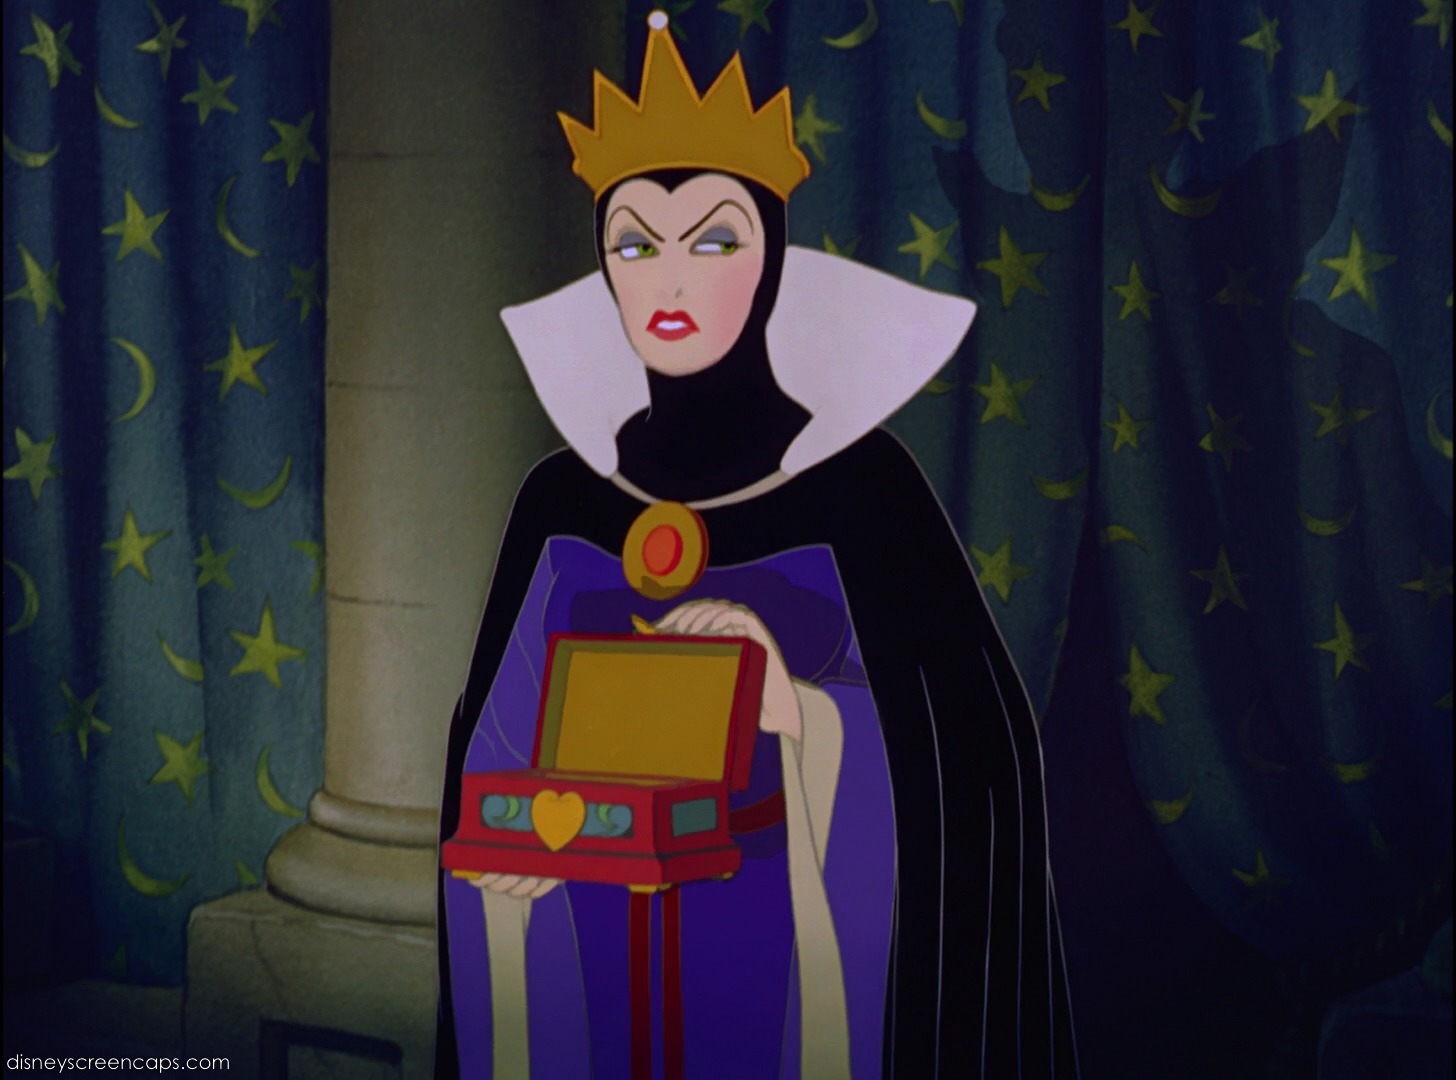 Disney Villains in Review: Queen Grimhilde (1937)